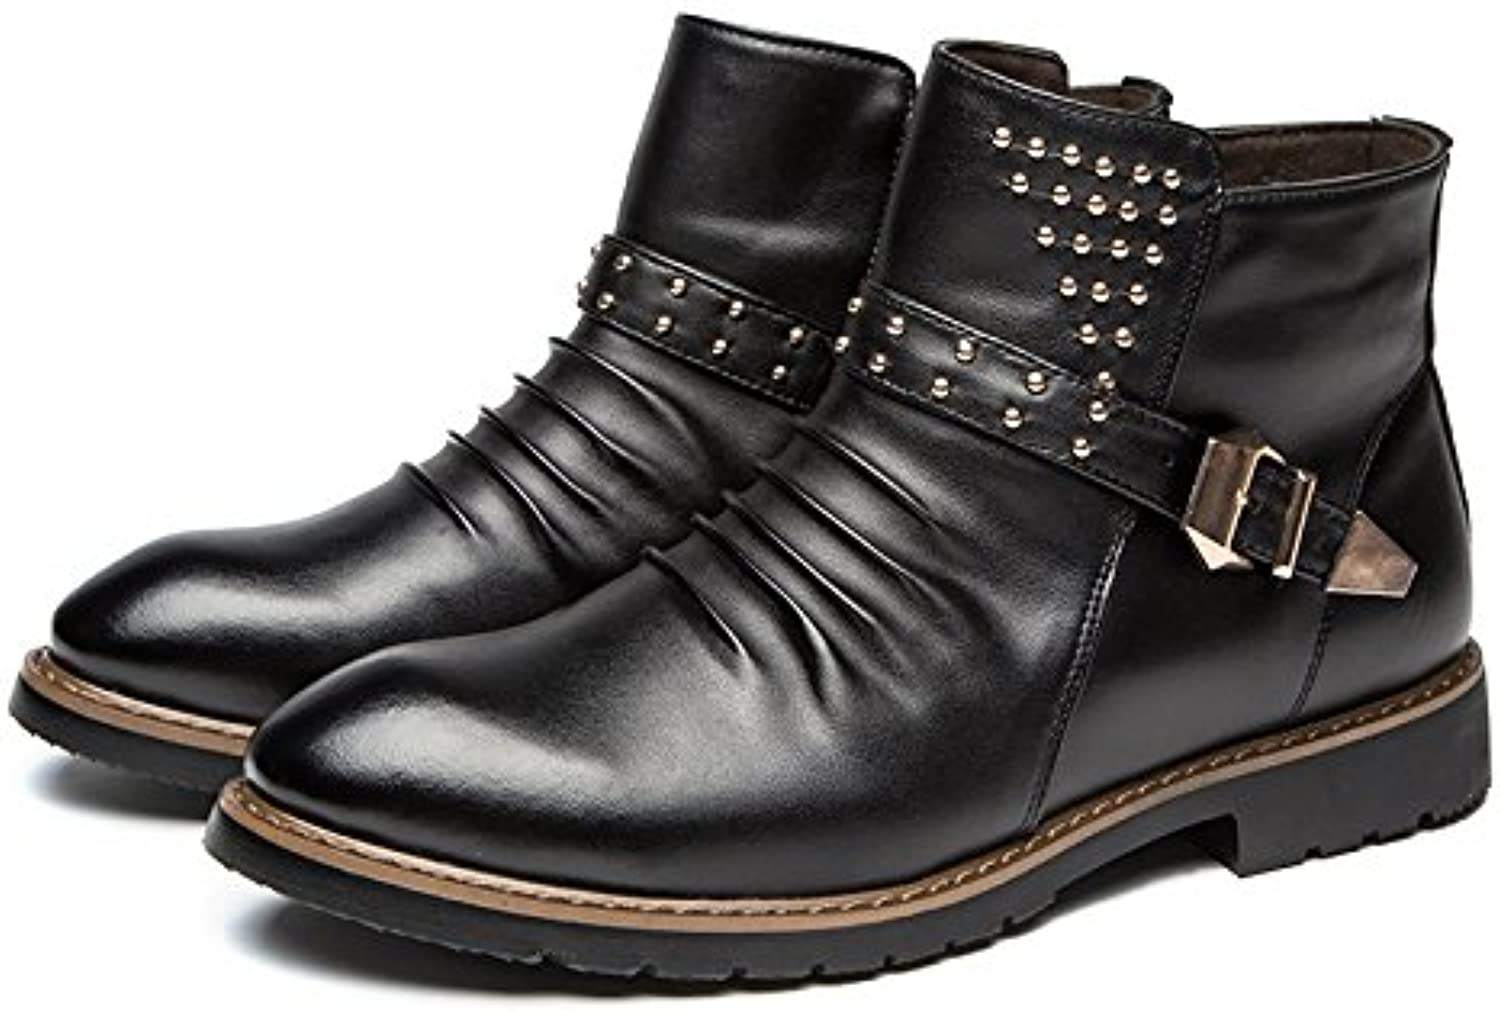 WZG New Martin boots British men 's high - top shoes men' s shoes classic shoes , black , 43